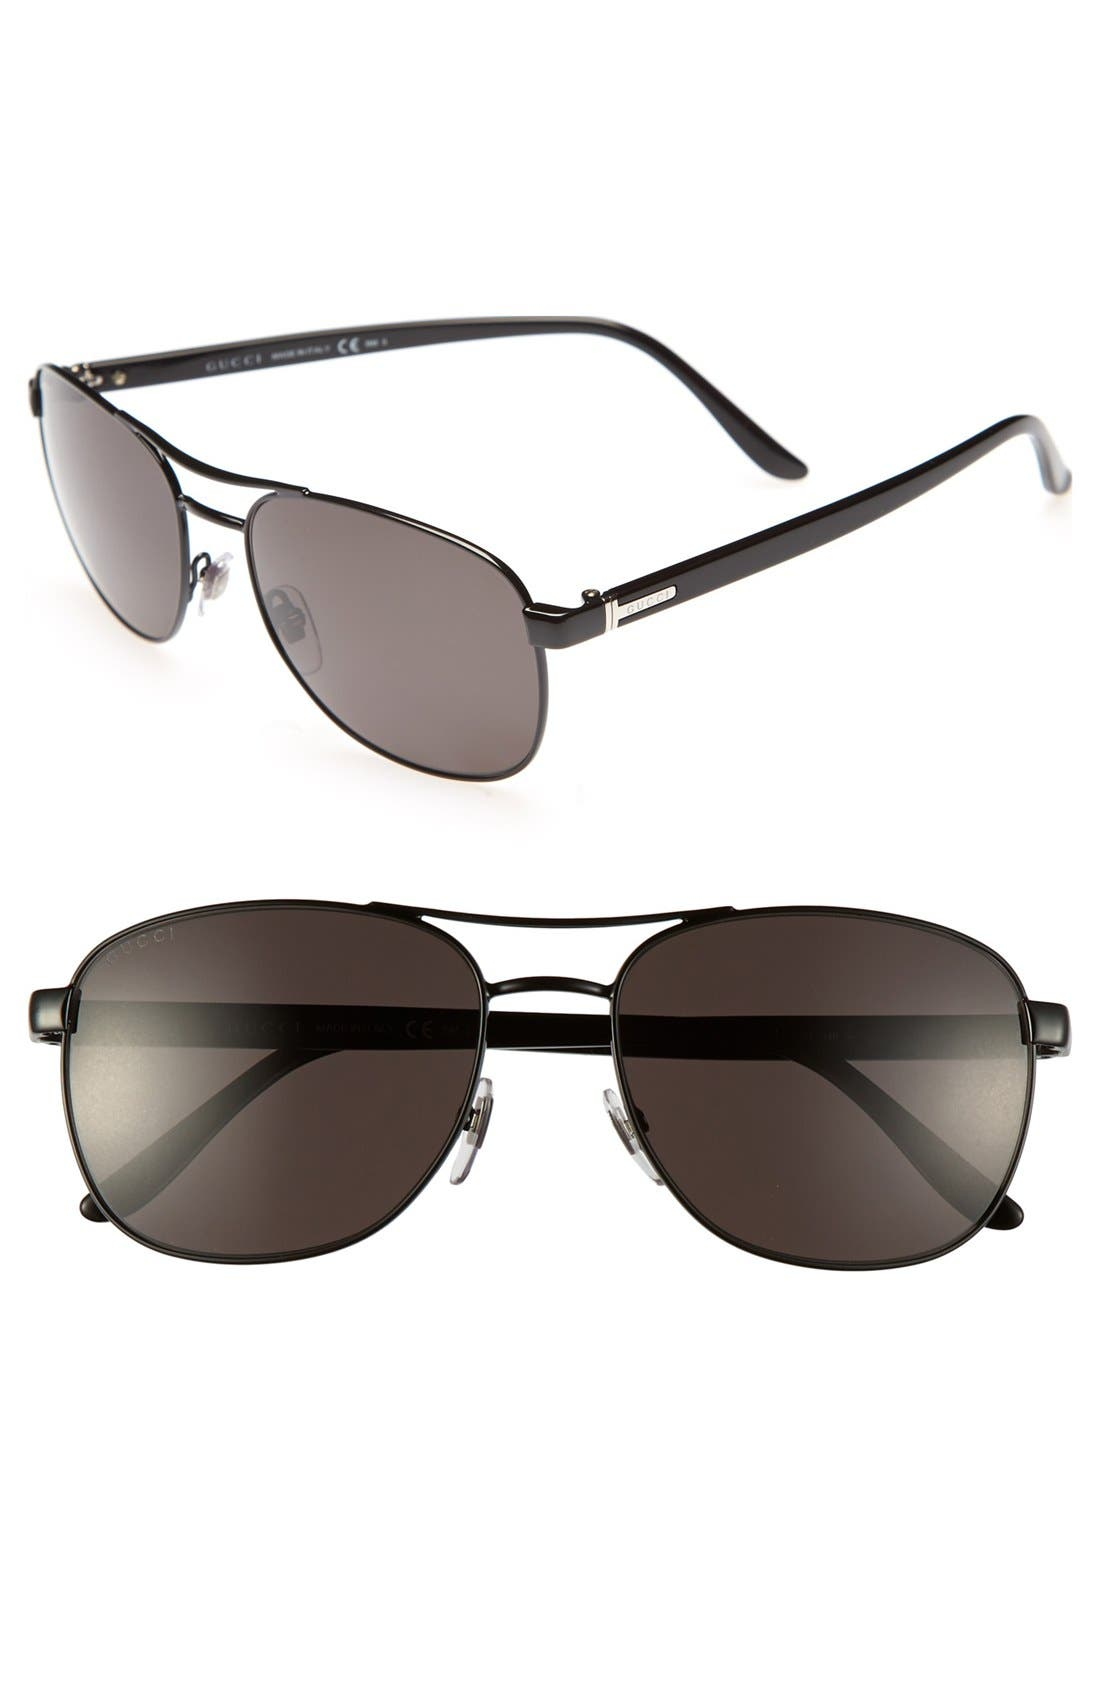 Main Image - Gucci 'Caravan' 57mm Polarized Sunglasses